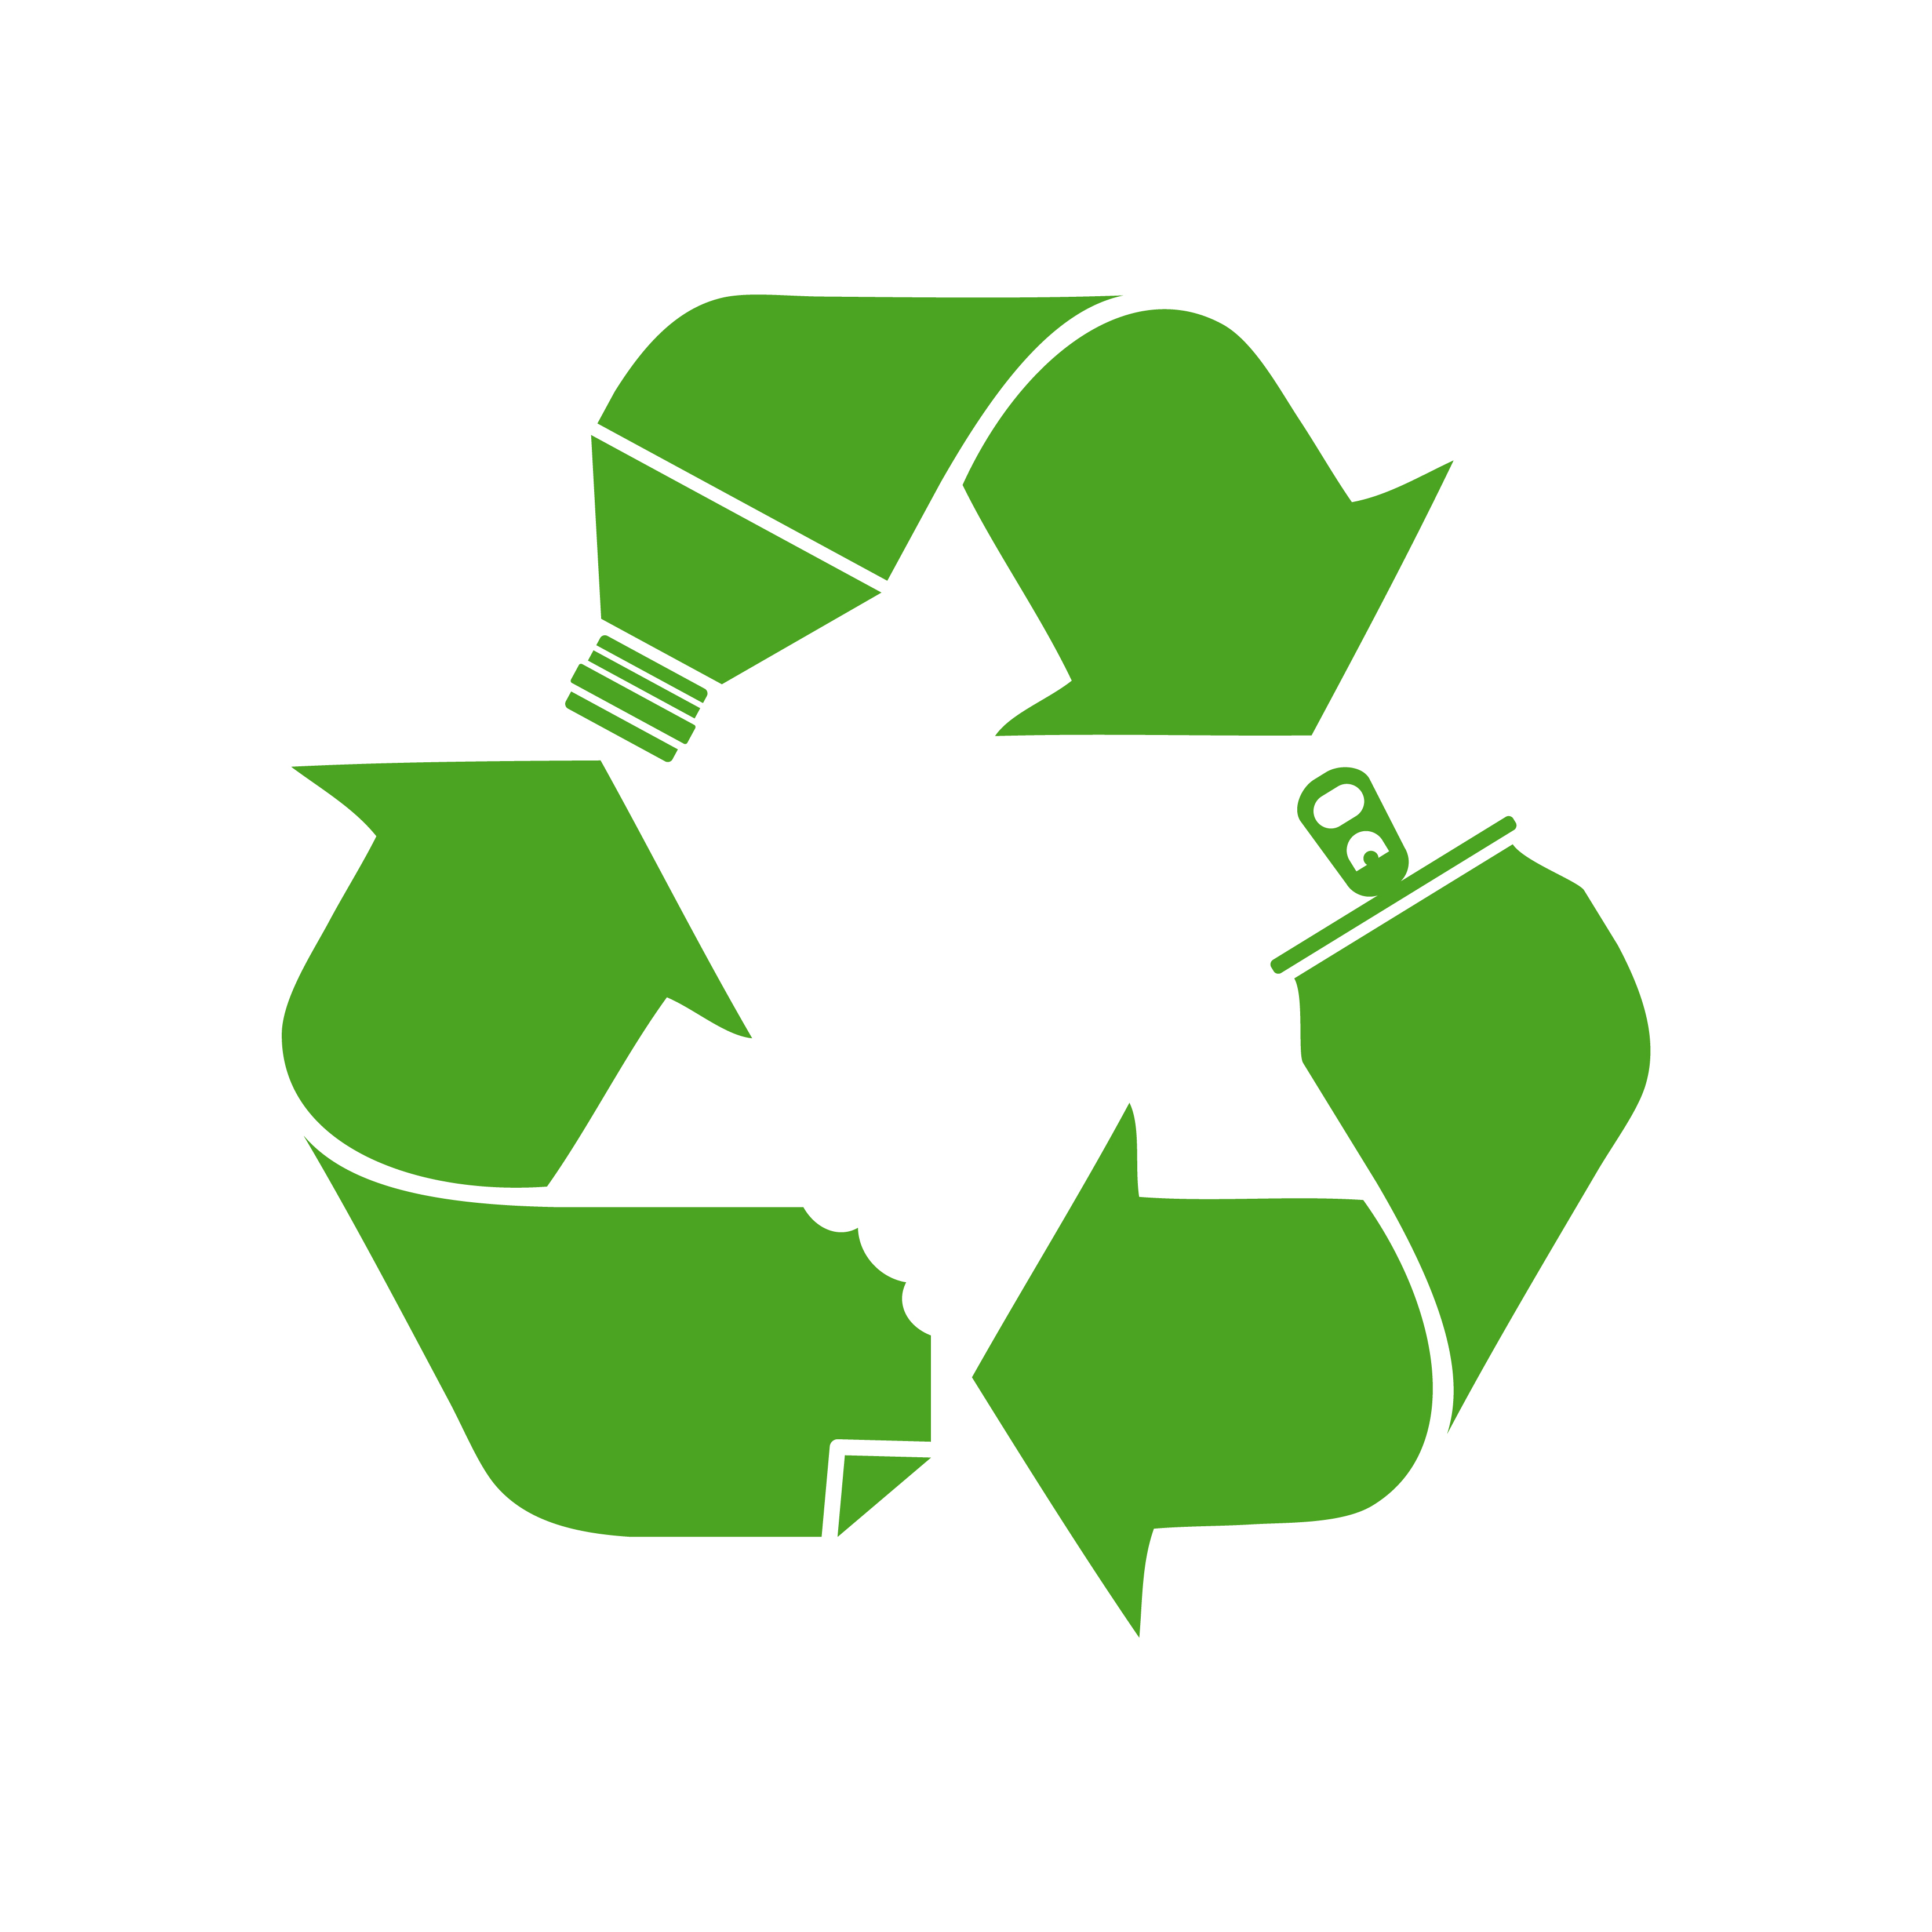 recycling image / Victor_Brave, Shutterstock